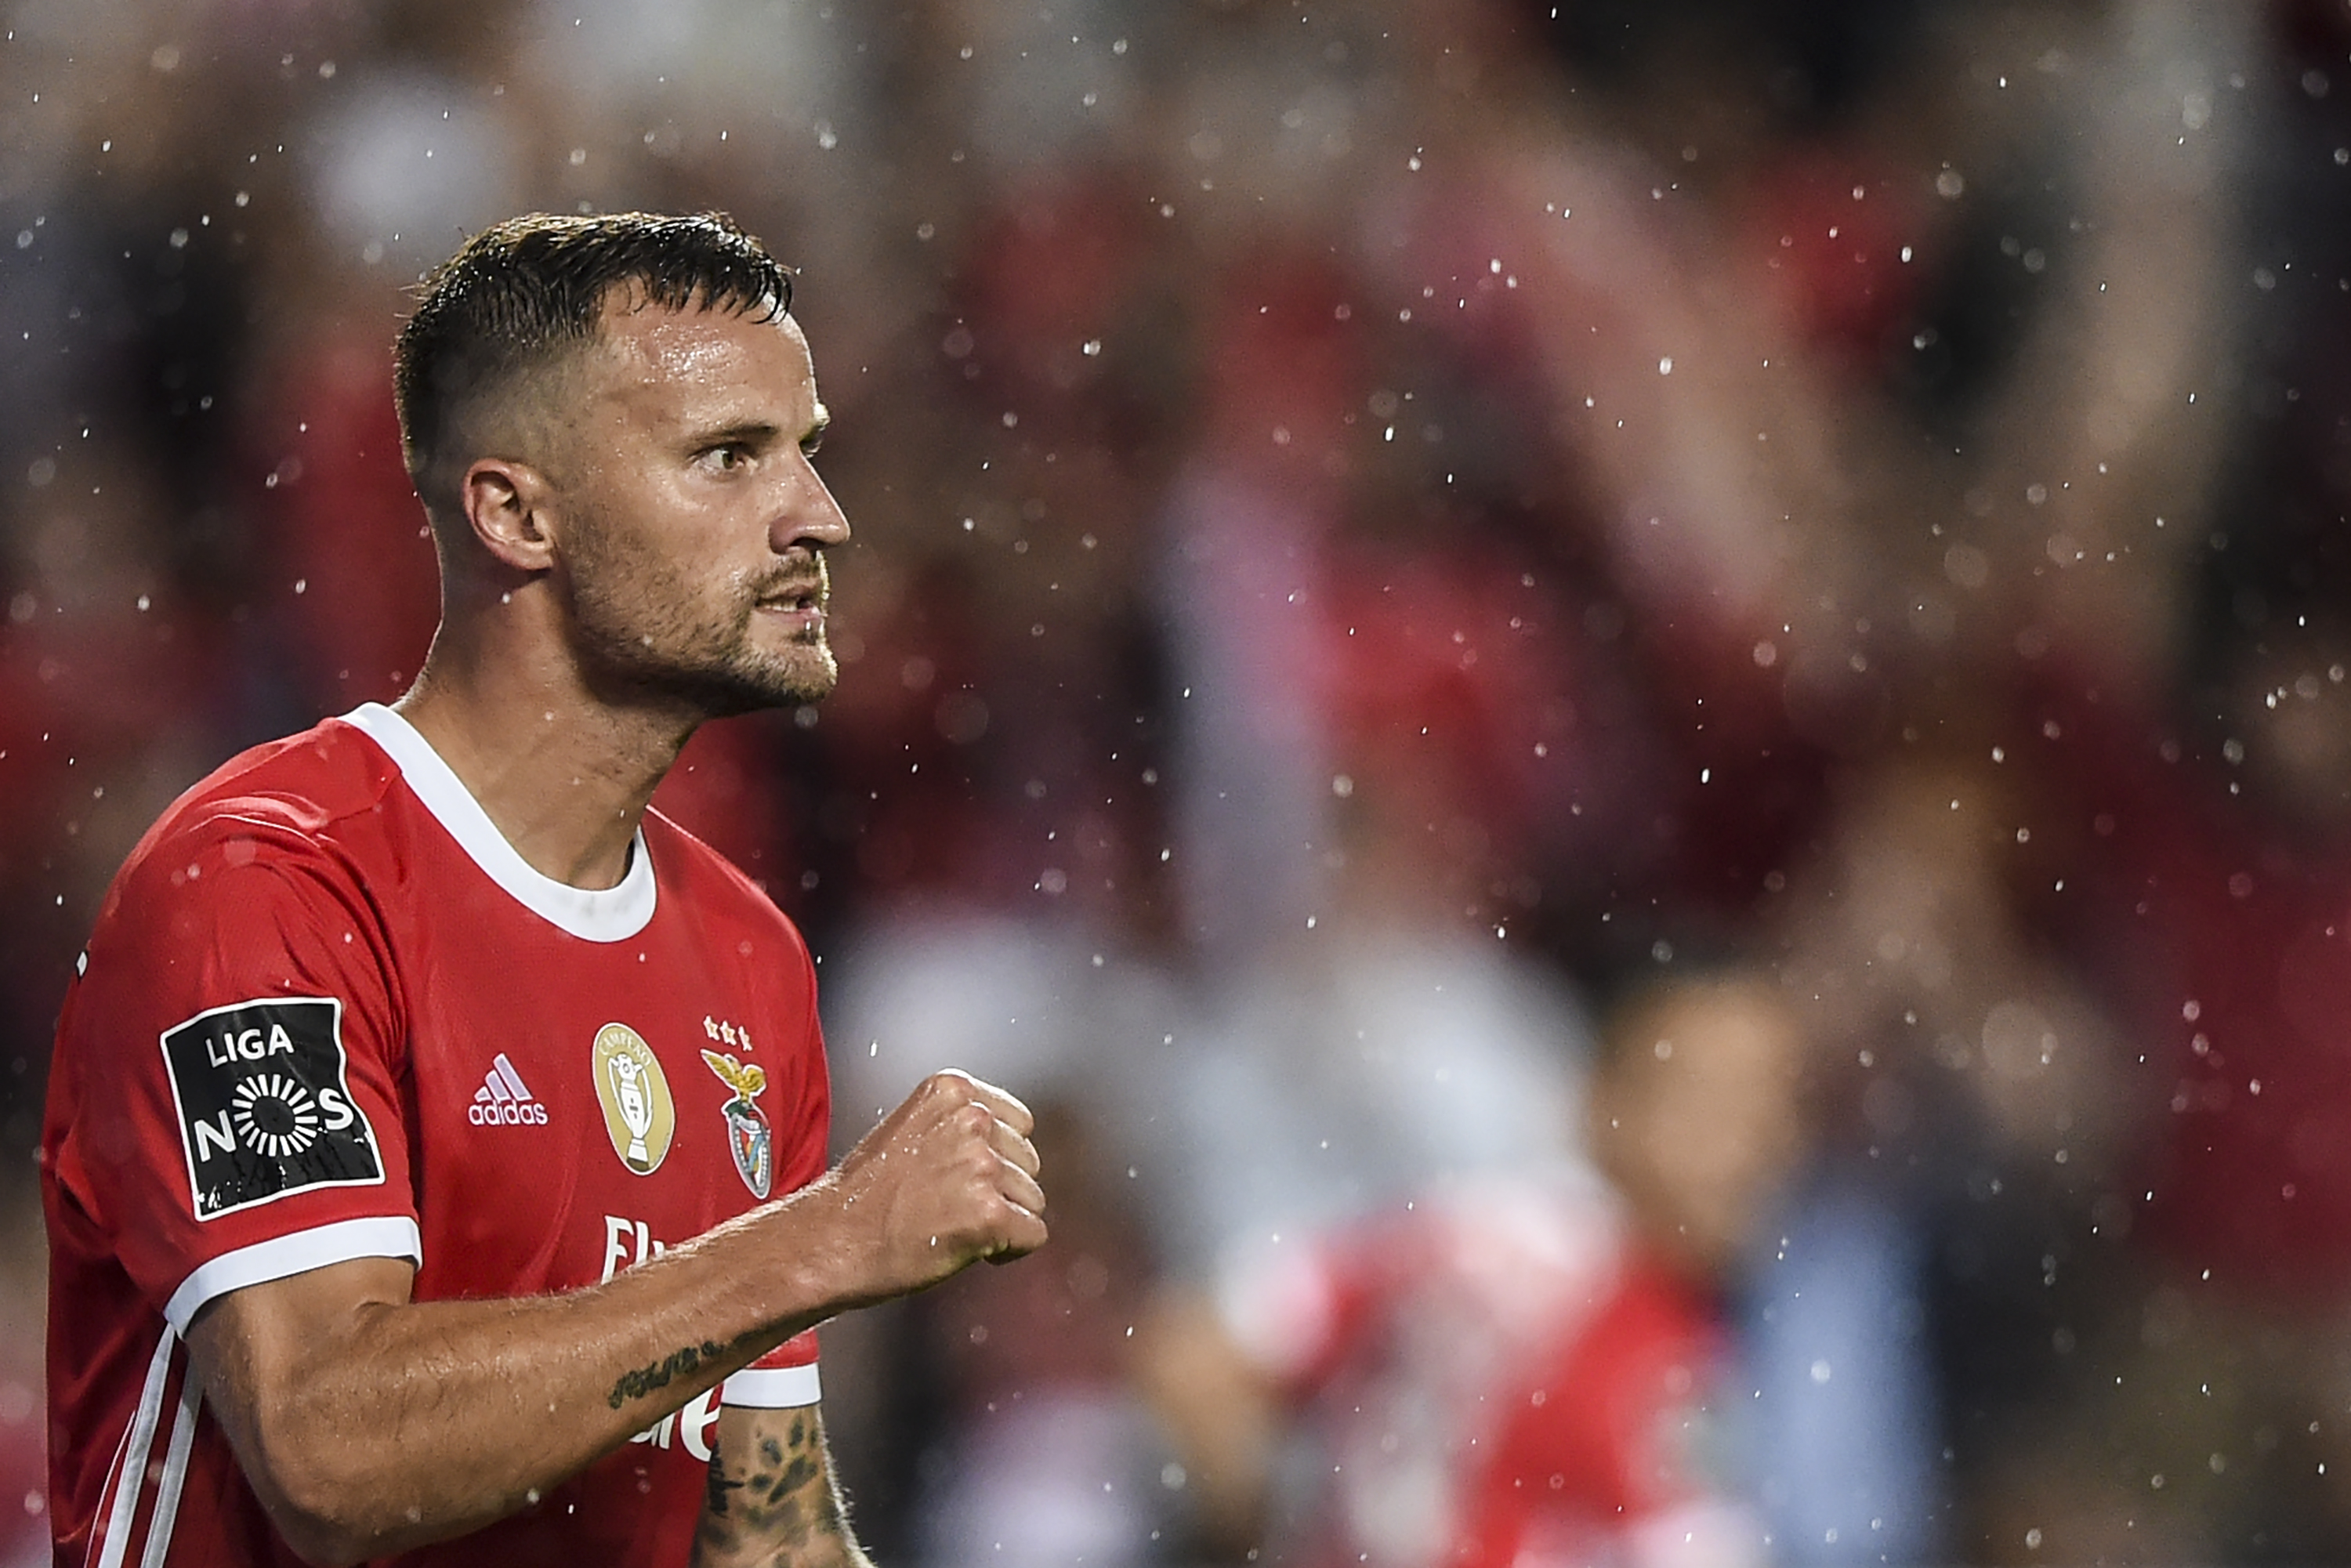 Haris Seferovic could be dropped after underwhelming performances (Photo by PATRICIA DE MELO MOREIRA/AFP/Getty Images)